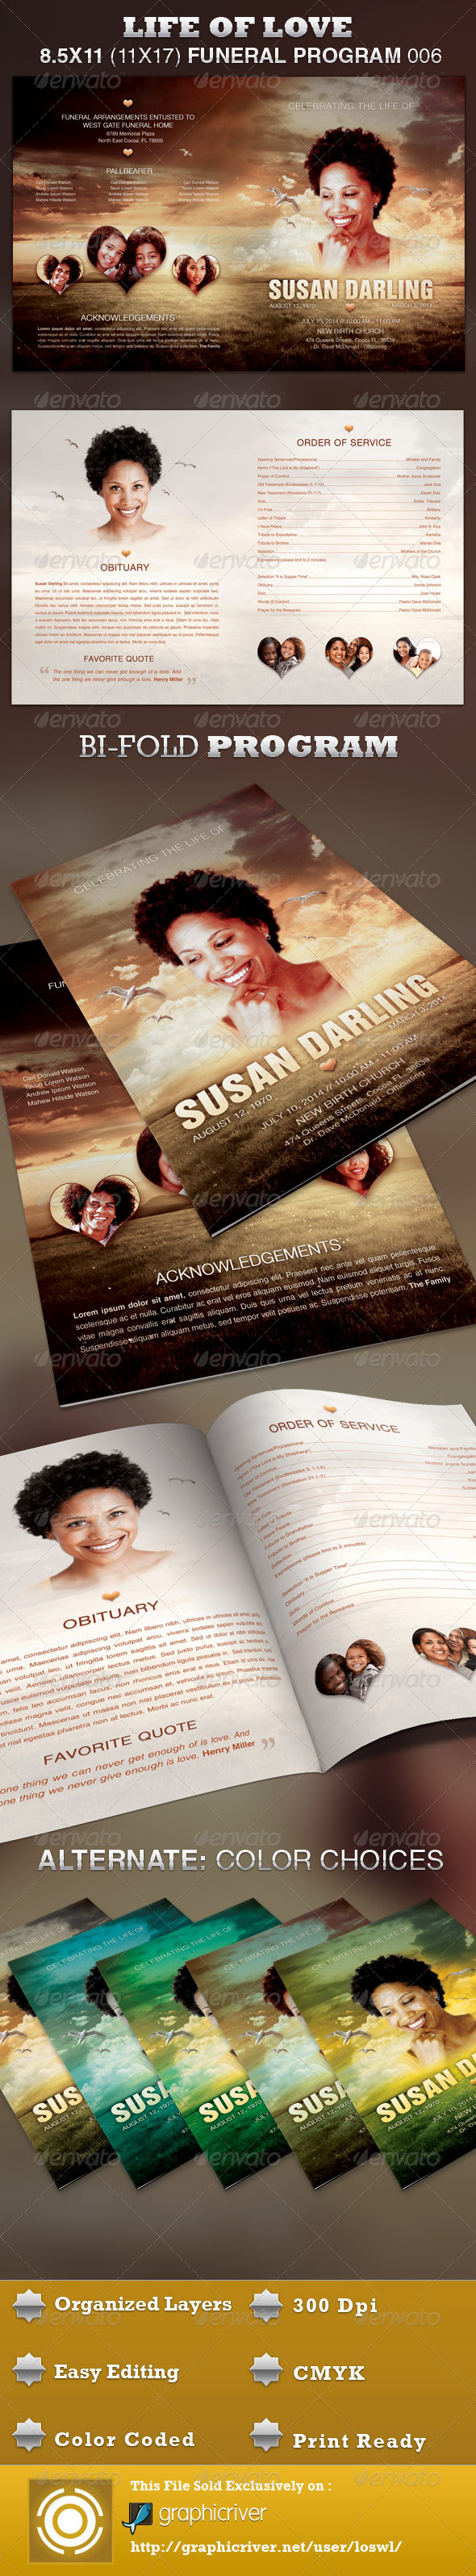 GraphicRiver Life of Love Funeral Program Template 006 3834685